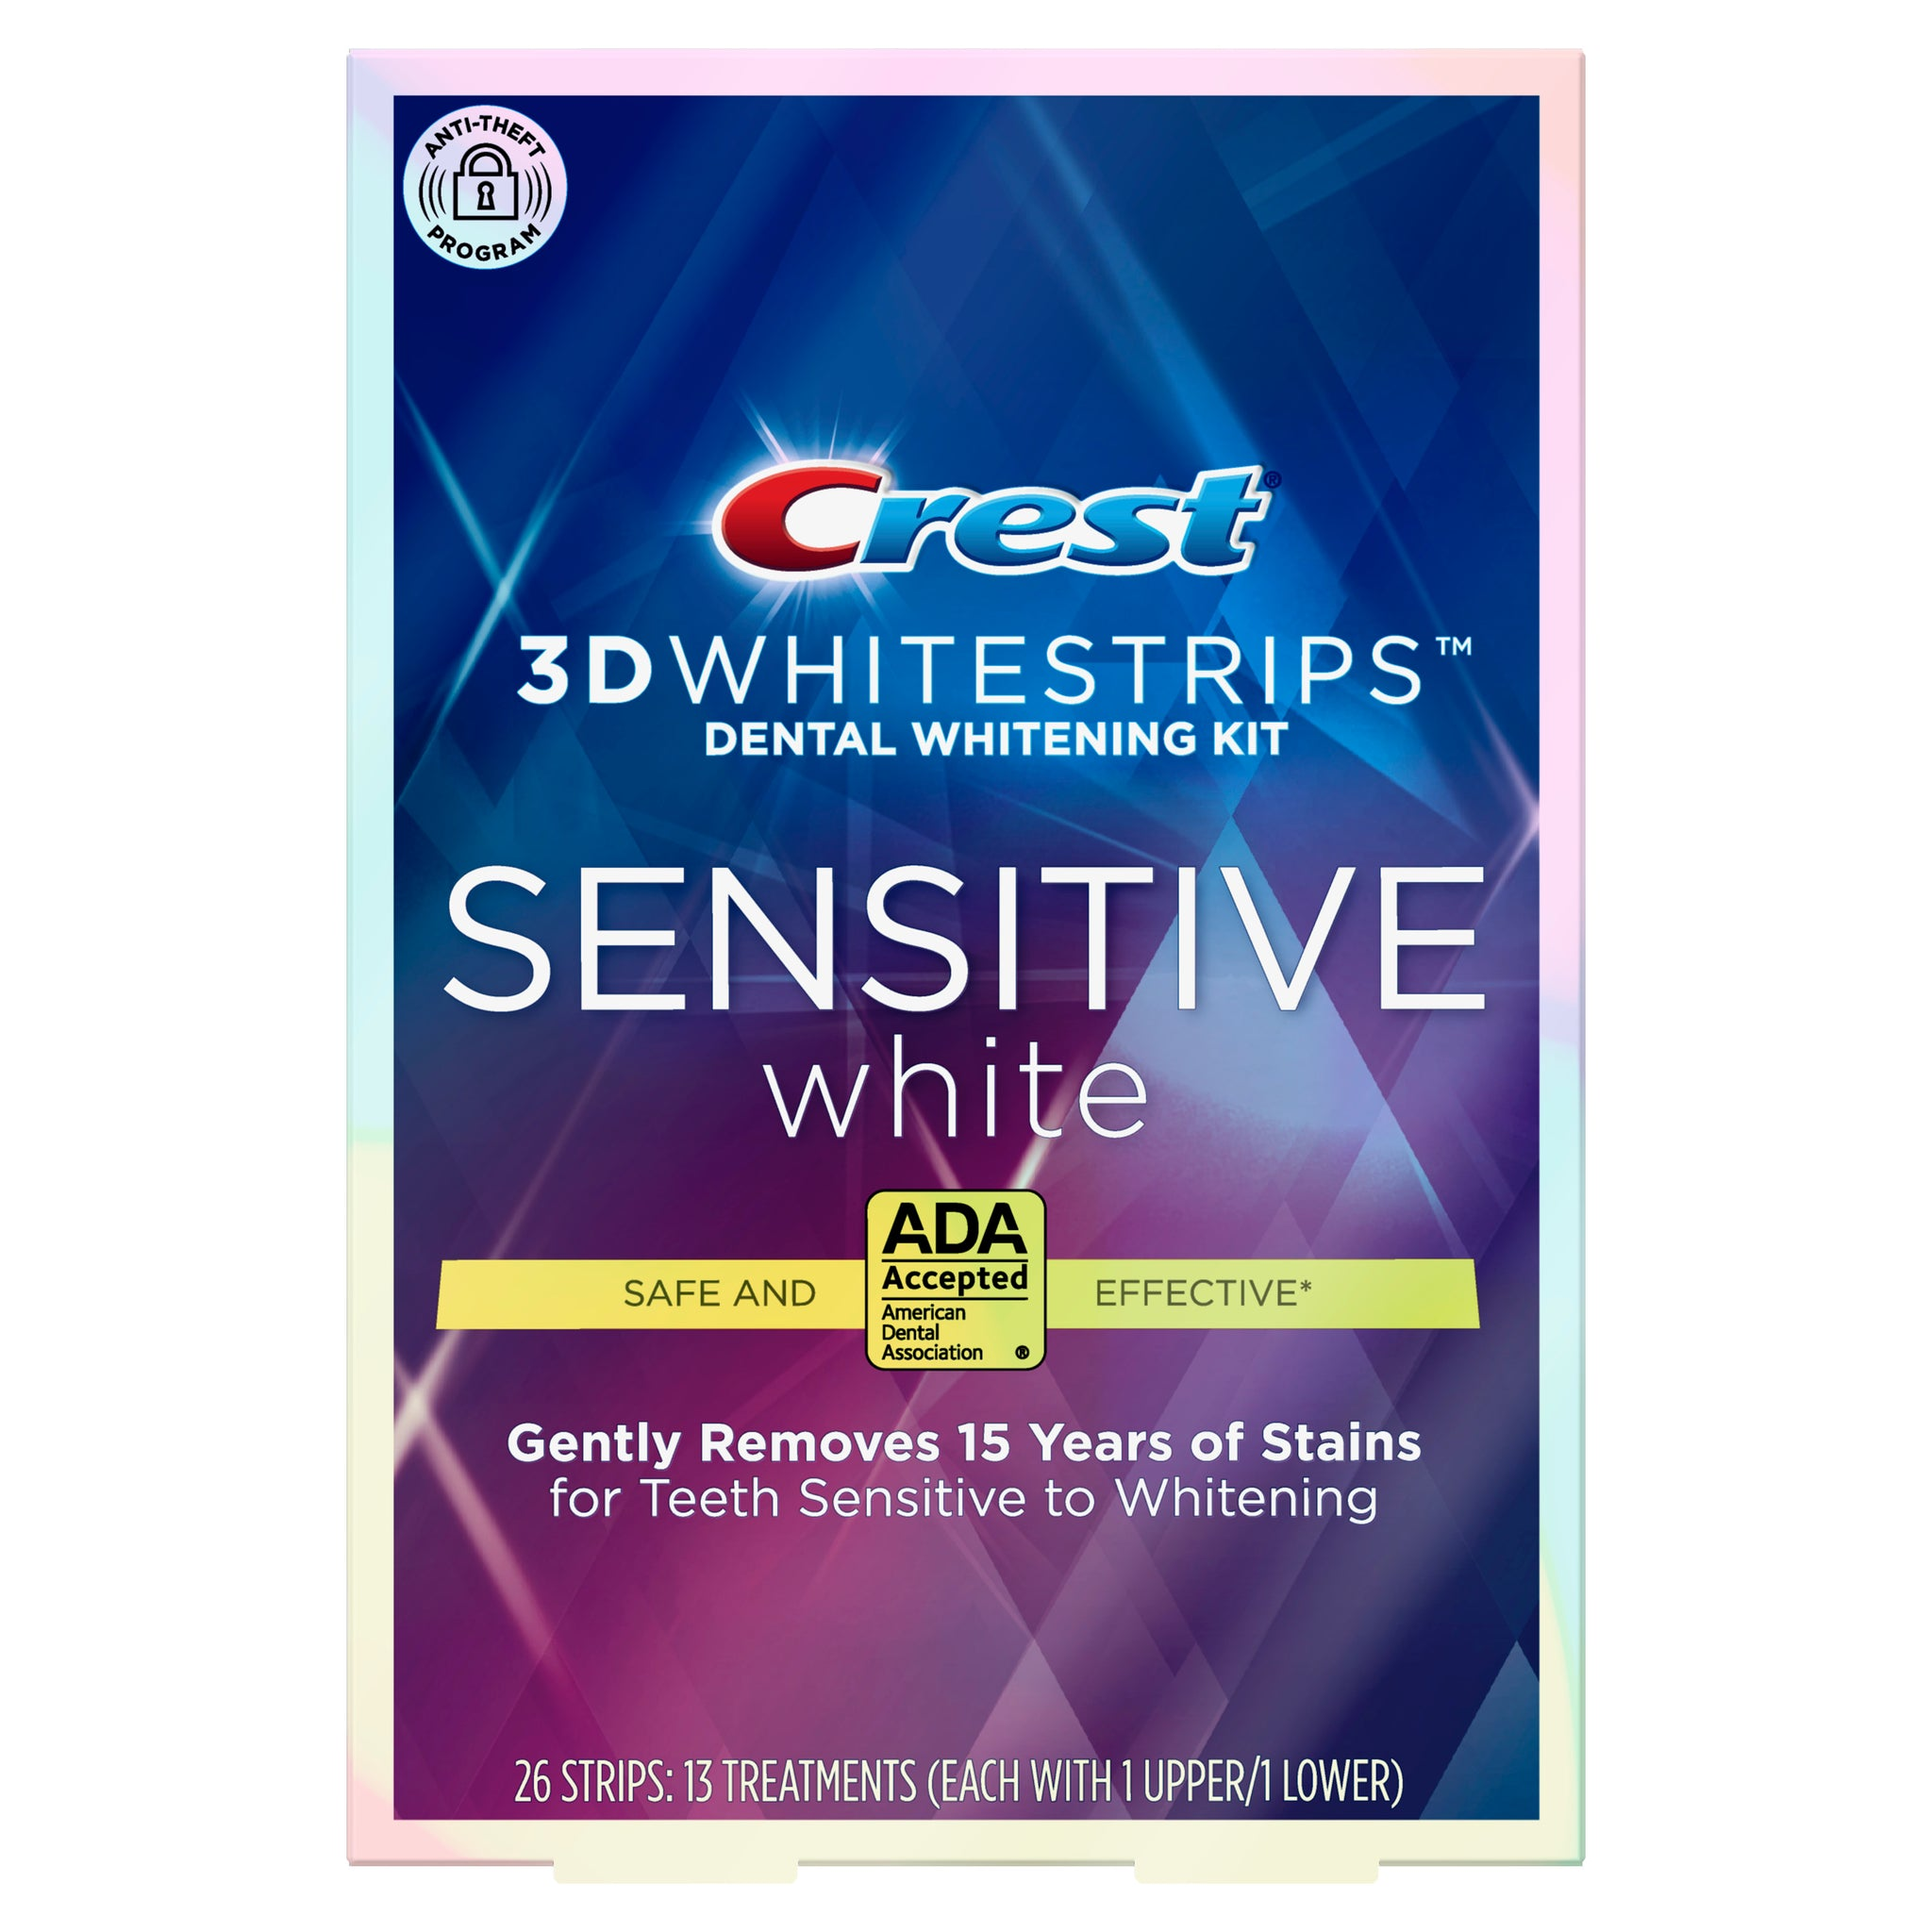 ☆ Bundle ☆ Crest 3D Whitestrips Sensitive White Whitening Kit dentale & Terapia sbiancante Sensibilità Cura Dentifricio